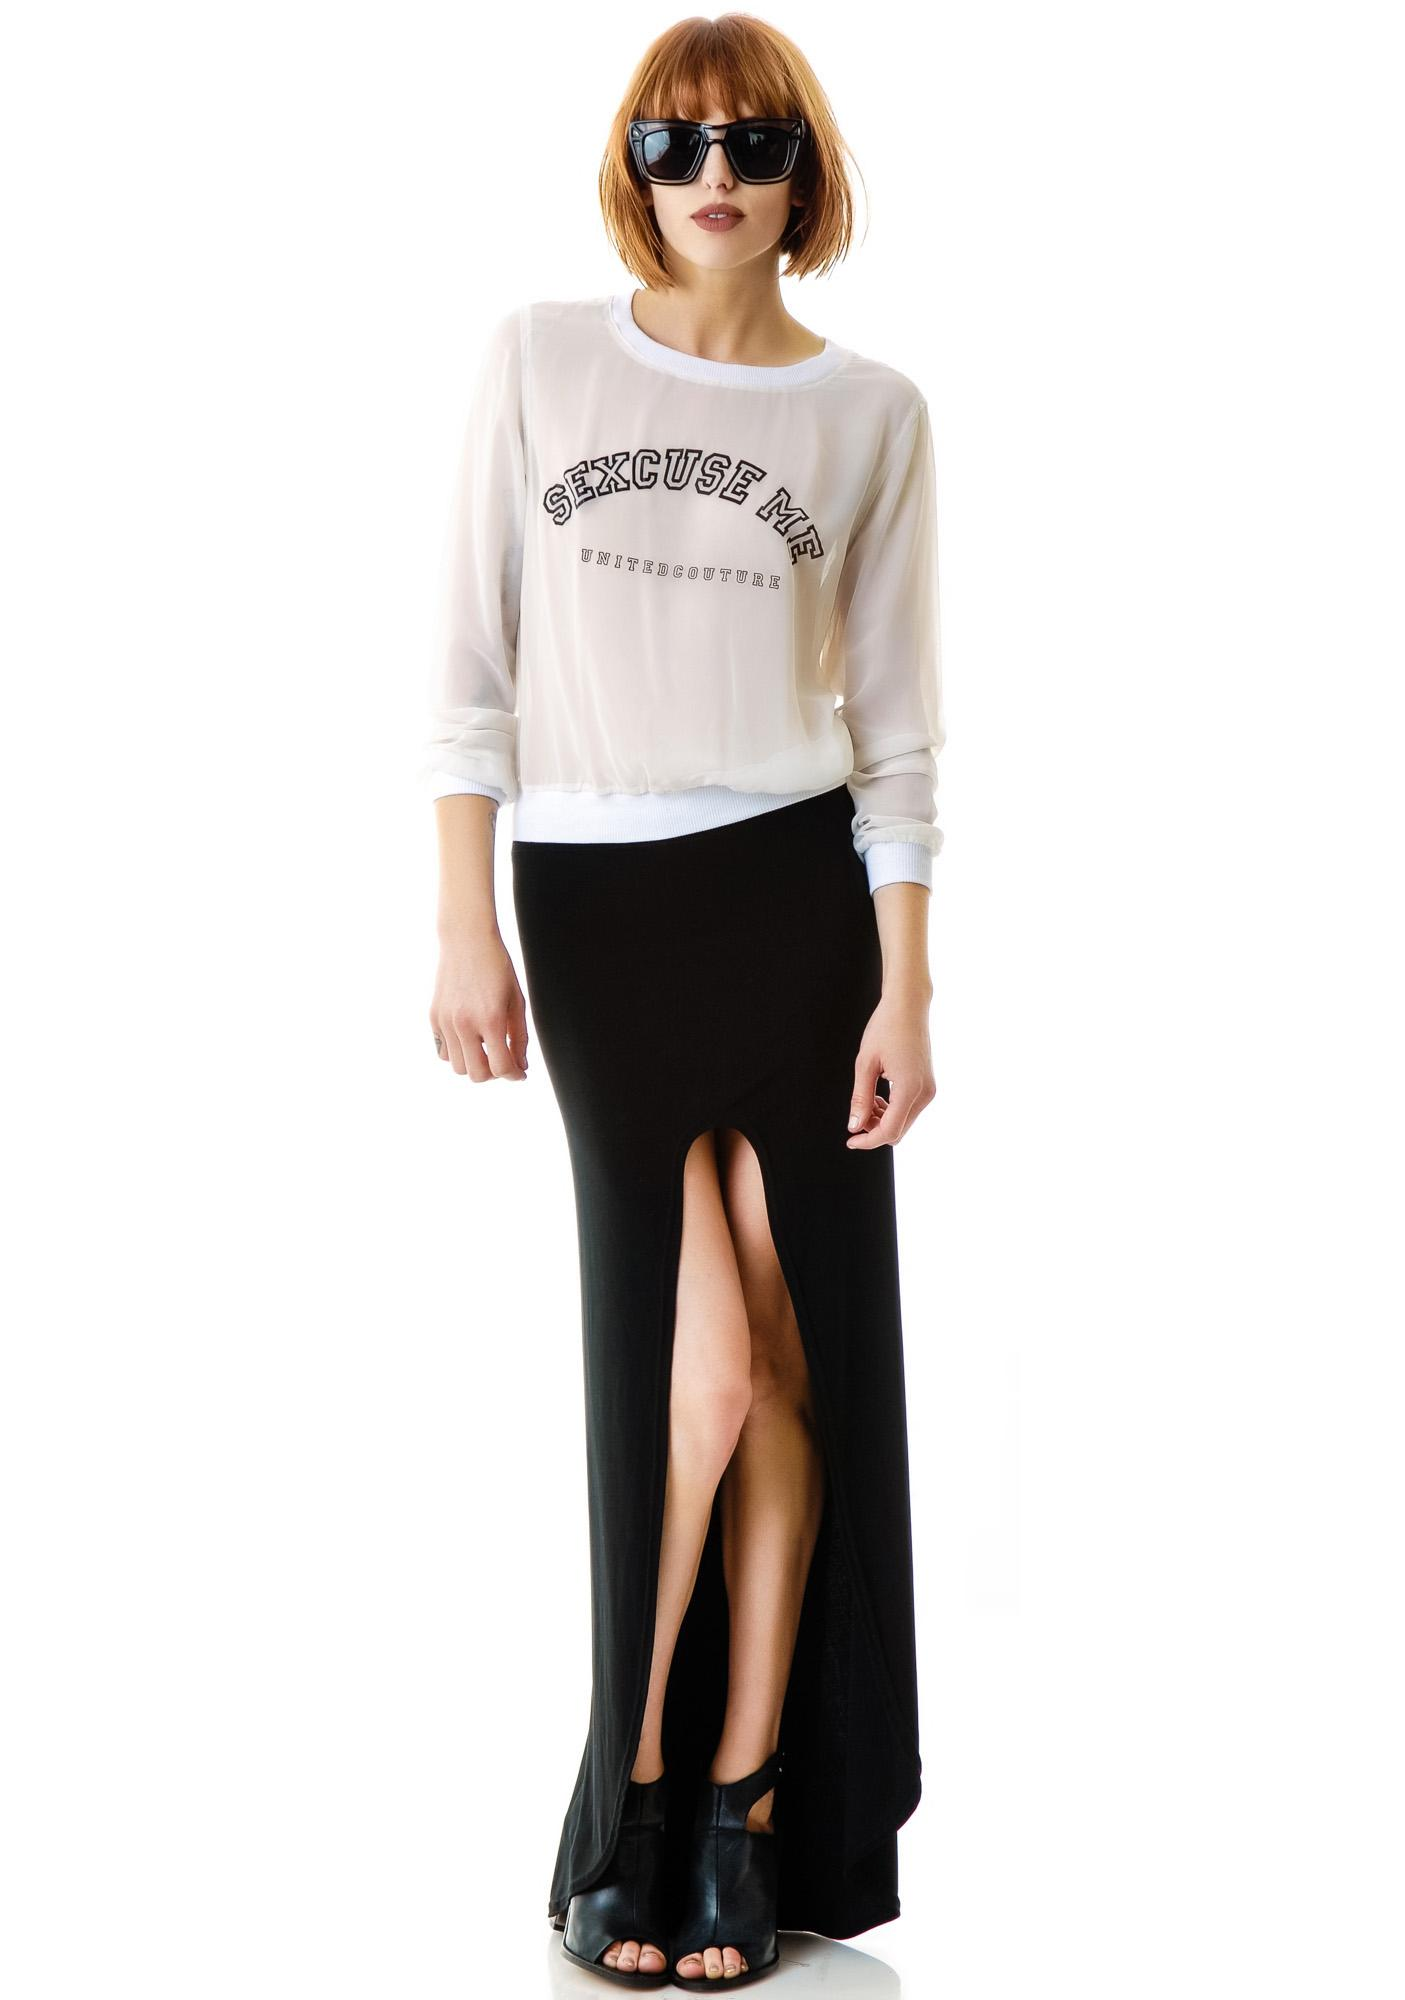 United Couture Sexcuse Me Chiffon Top